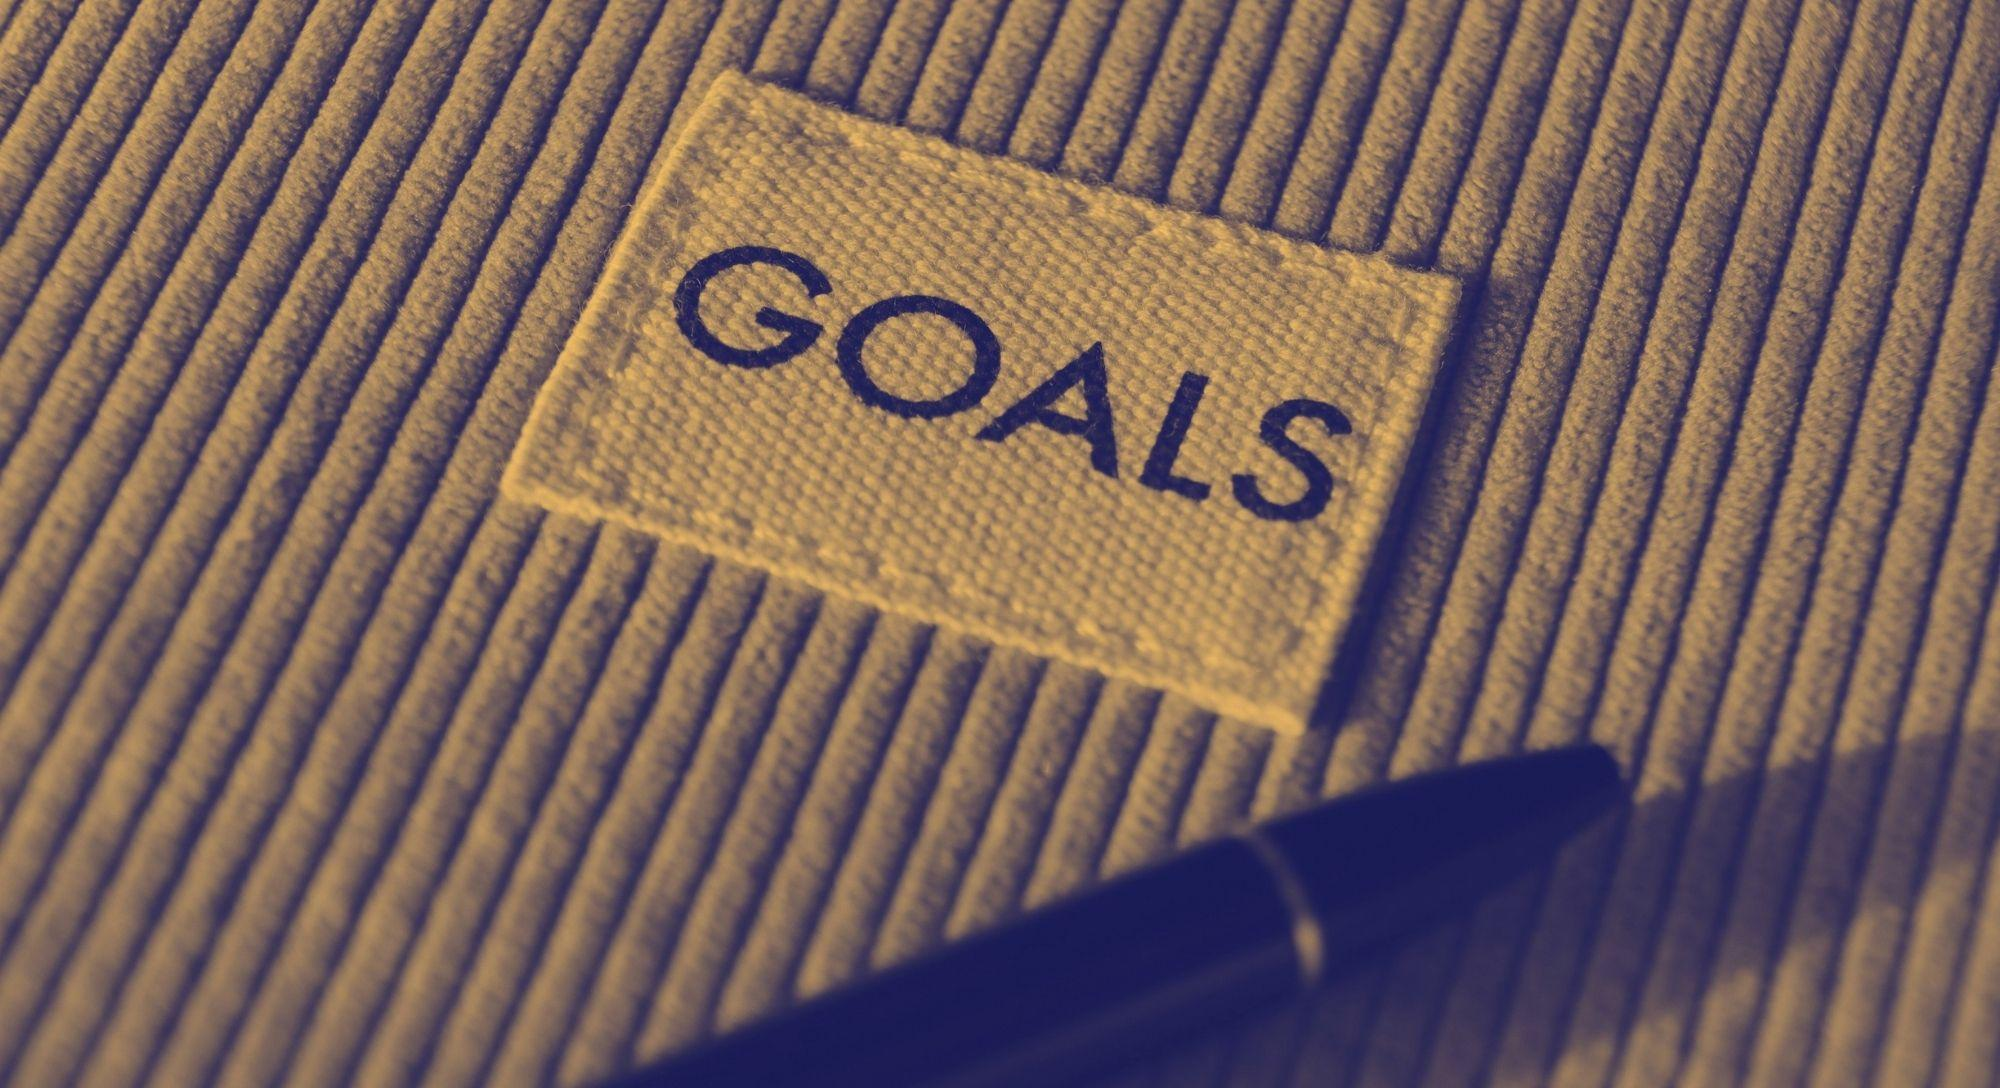 How to set goals and achieve them: the art of getting things done